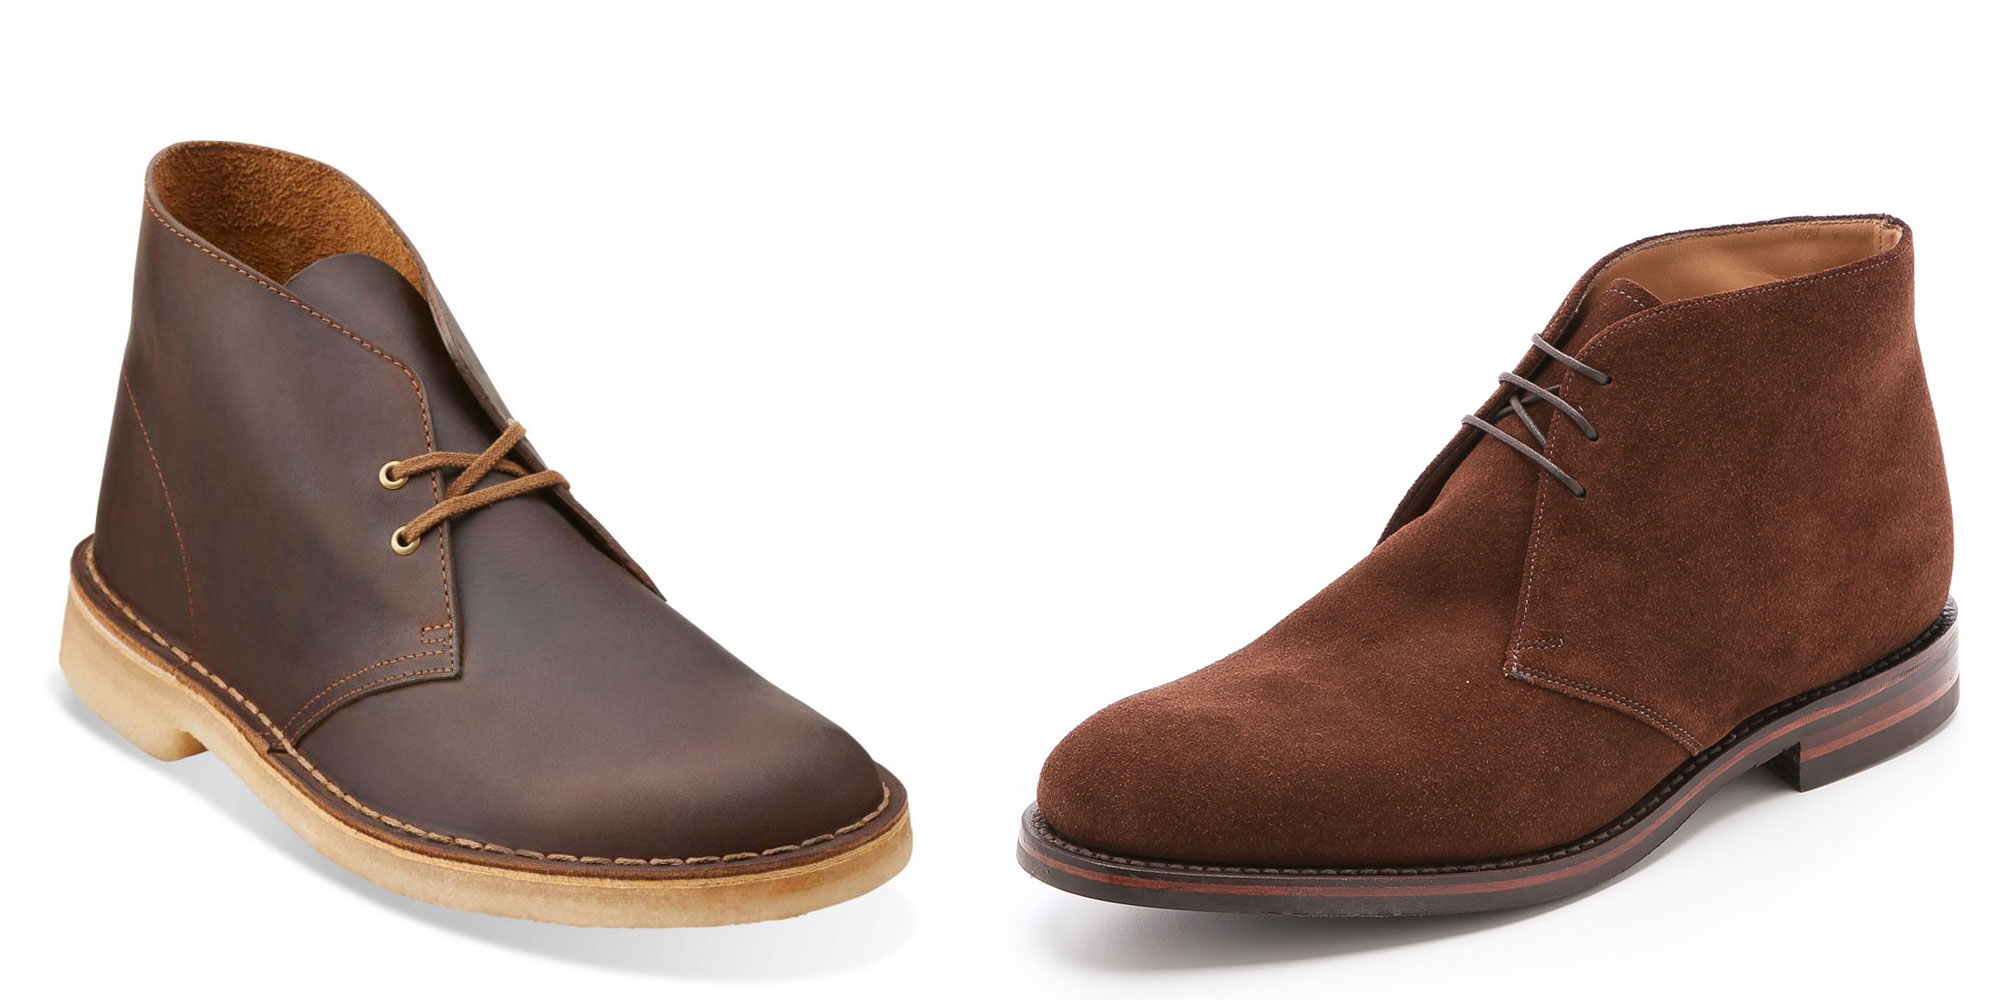 10 Ways to Get into Fall's Most Versatile Boots